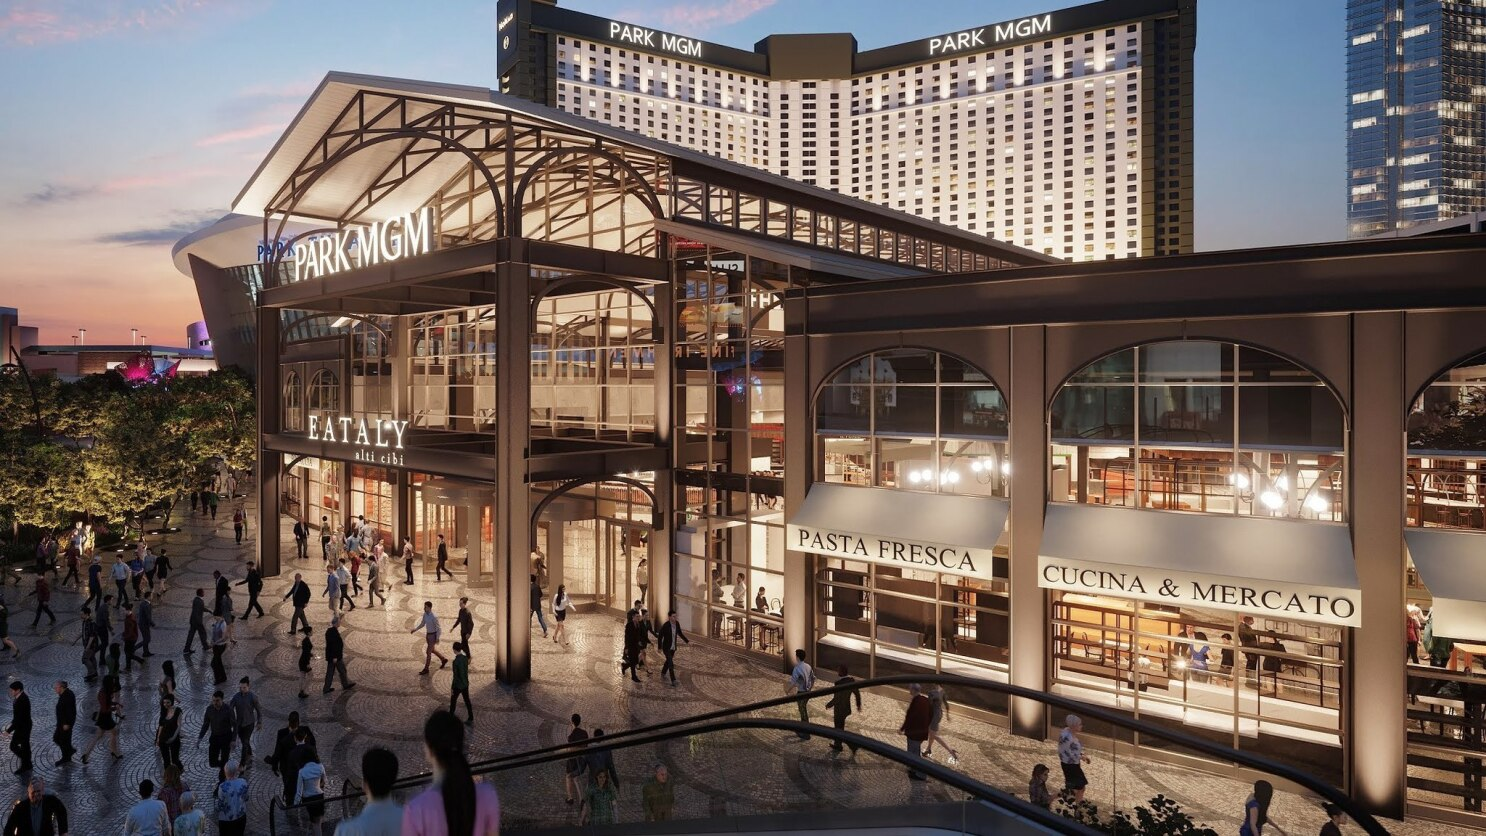 In Las Vegas It S Out With The Monte Carlo In With Park Mgm Here S A Sneak Peek Inside Los Angeles Times